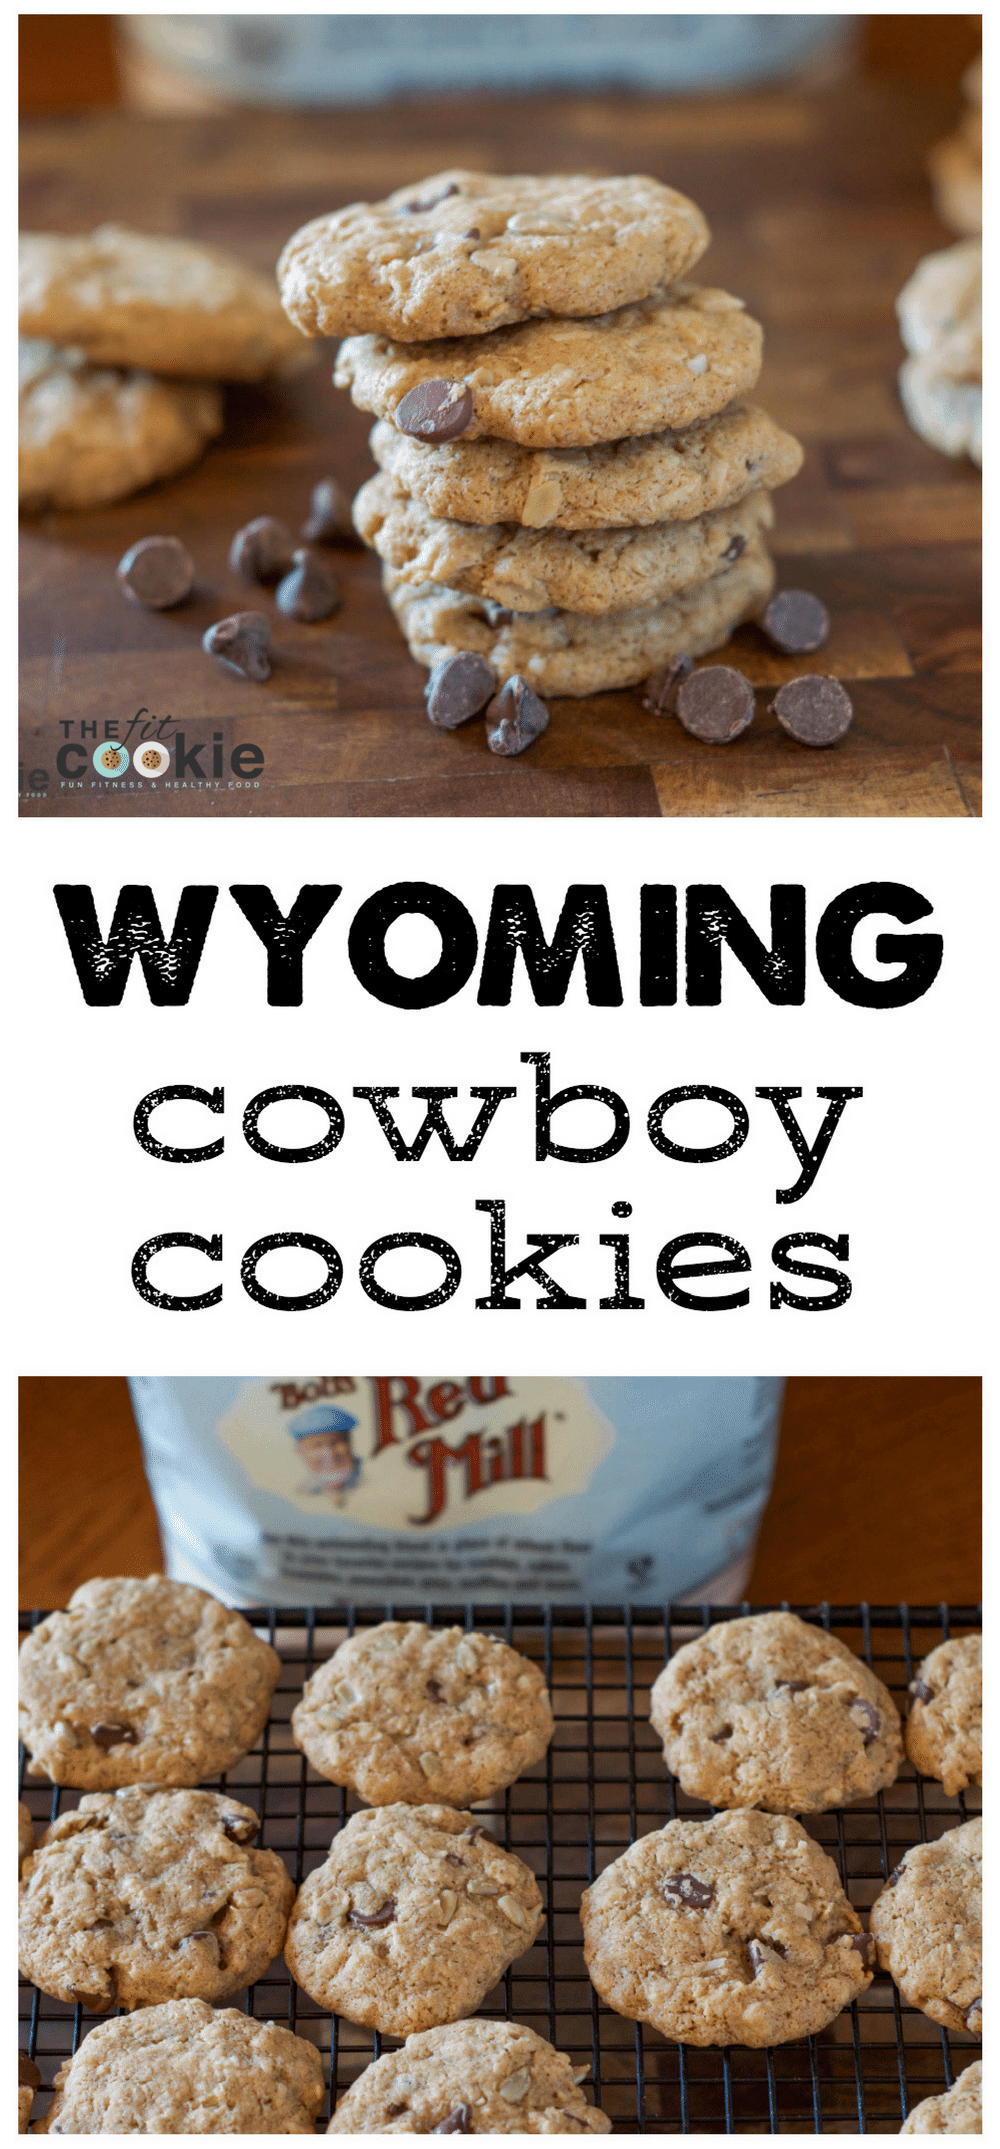 Baking across the USA: Wyoming Cowboy Cookies (#GlutenFree) - @TheFitCookie #AD #50StatesofCookies @BobsRedMill